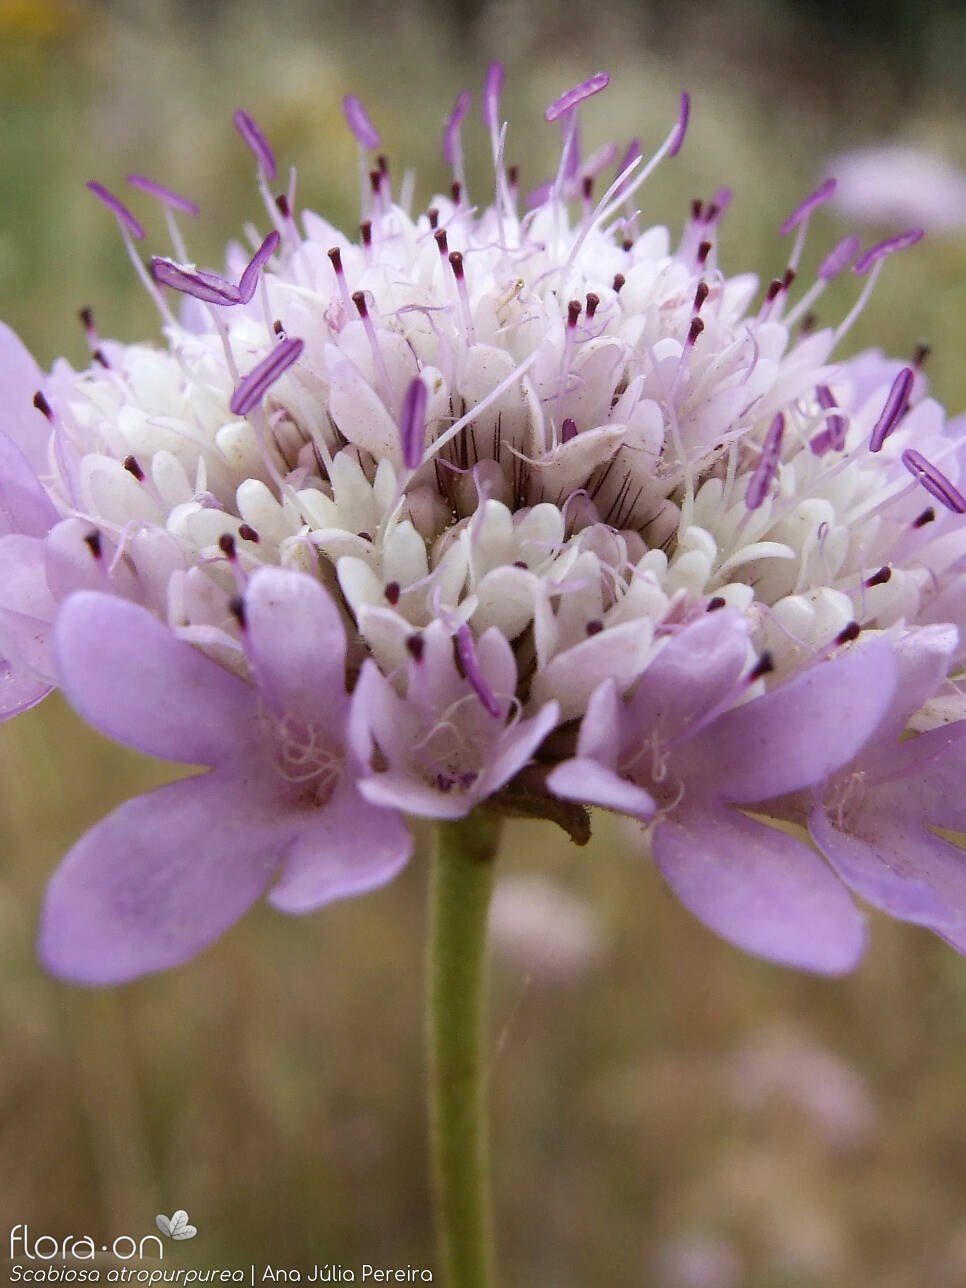 Scabiosa atropurpurea - Flor (close-up) | Ana Júlia Pereira; CC BY-NC 4.0